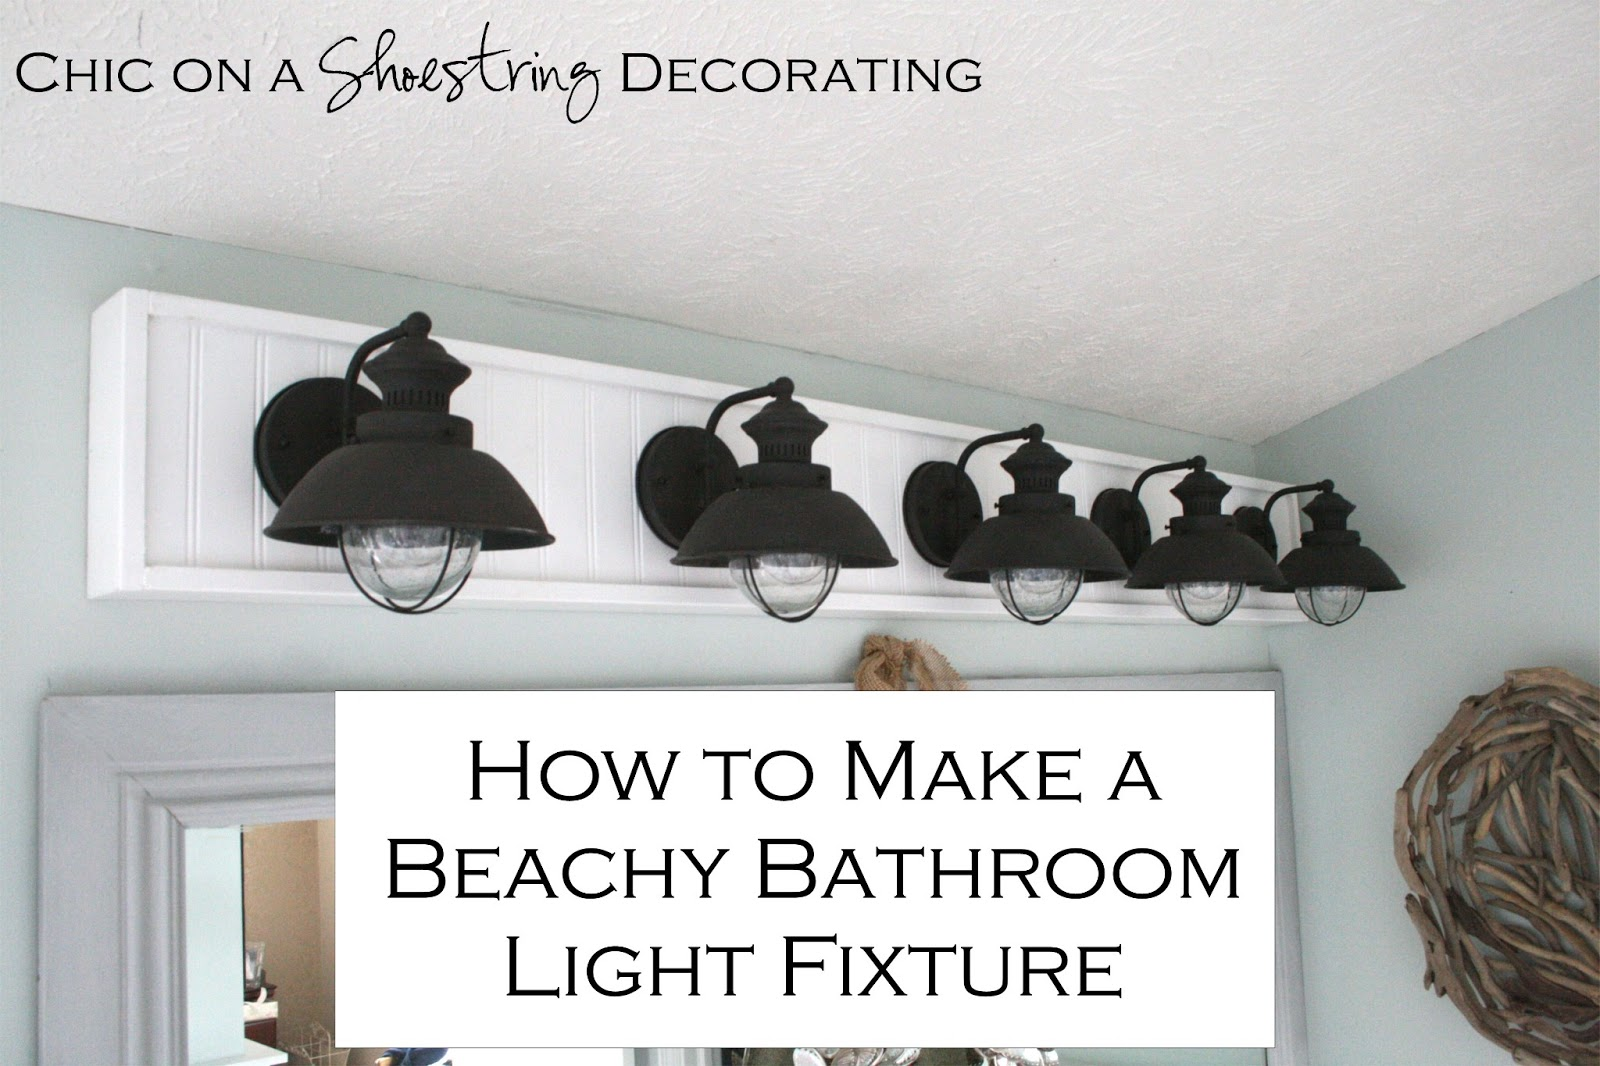 Chic on a shoestring decorating how to build a bathroom light fixture how to make a beachy light fixture by chic on a shoestring decorating aloadofball Gallery